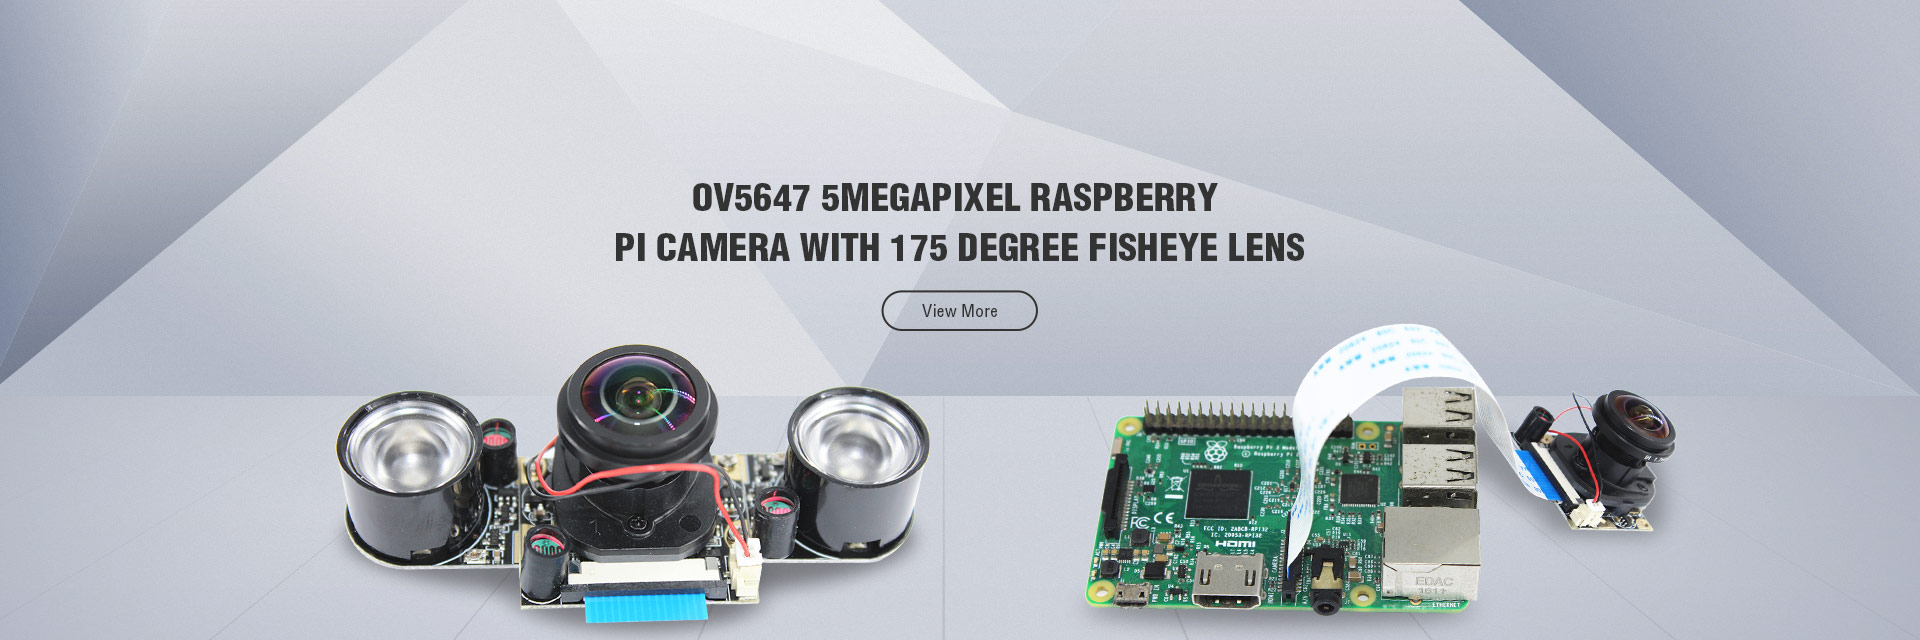 OV5647 5MEGAPIXEL RASPBERRY PI CAMERA WITH 175 DEGREE FISHEYE LENS